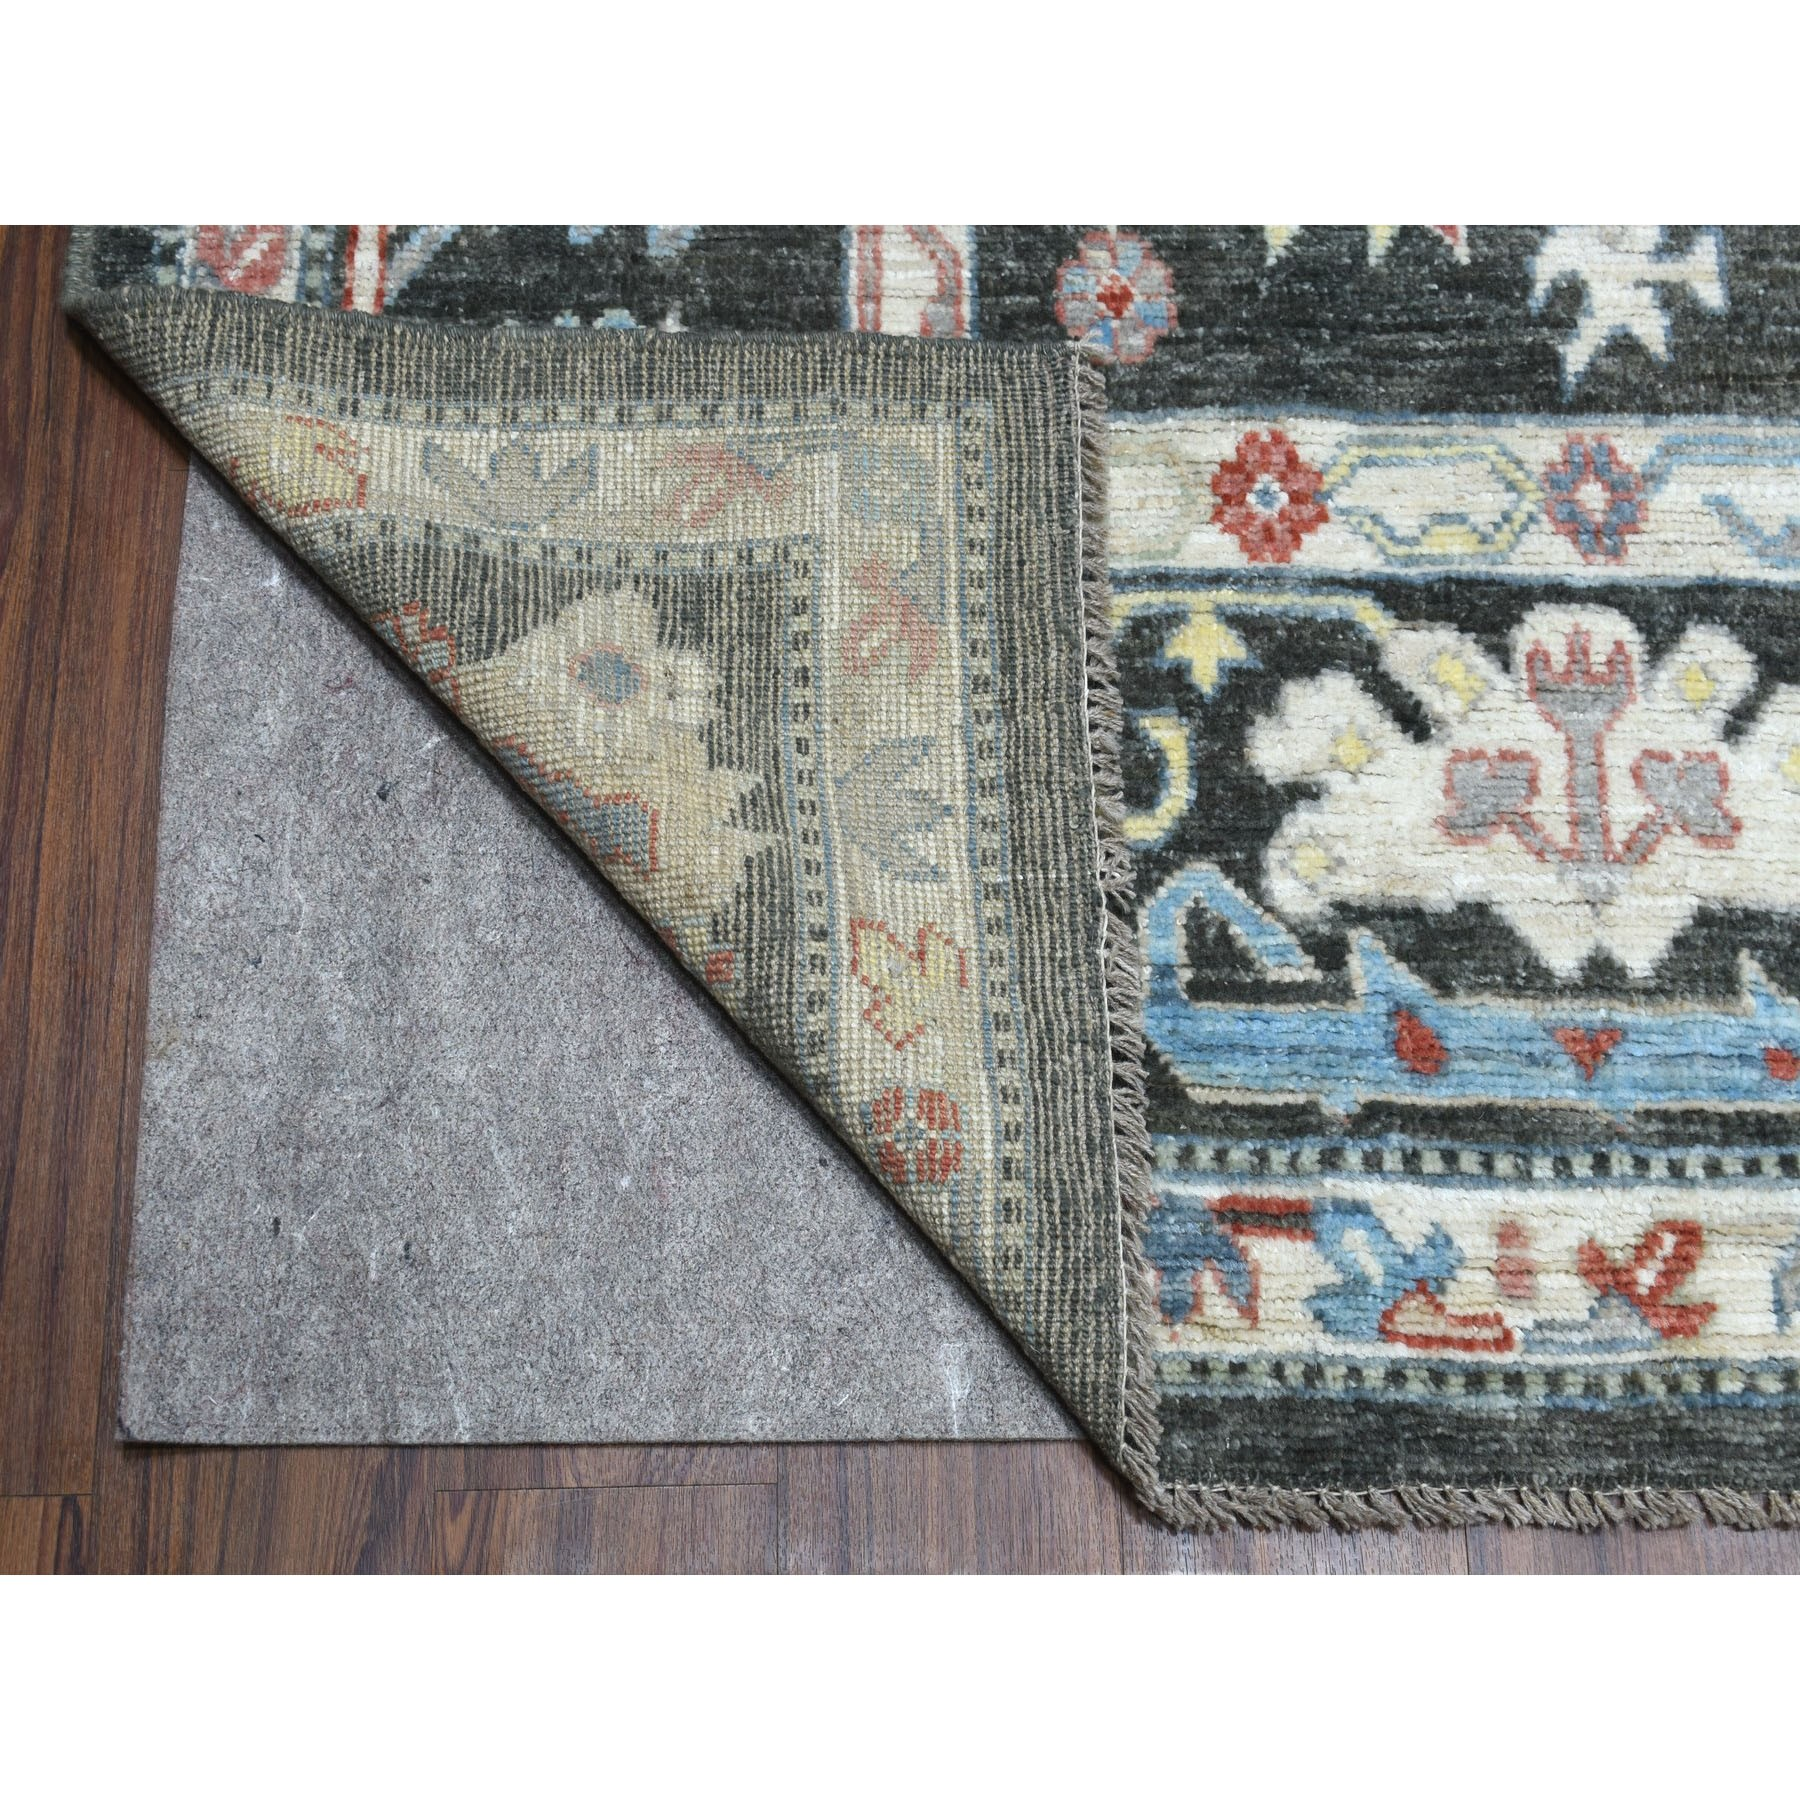 """8'9""""x12' Charcoal Black Angora Oushak With Soft Velvety Wool Hand Knotted Oriental Rug"""